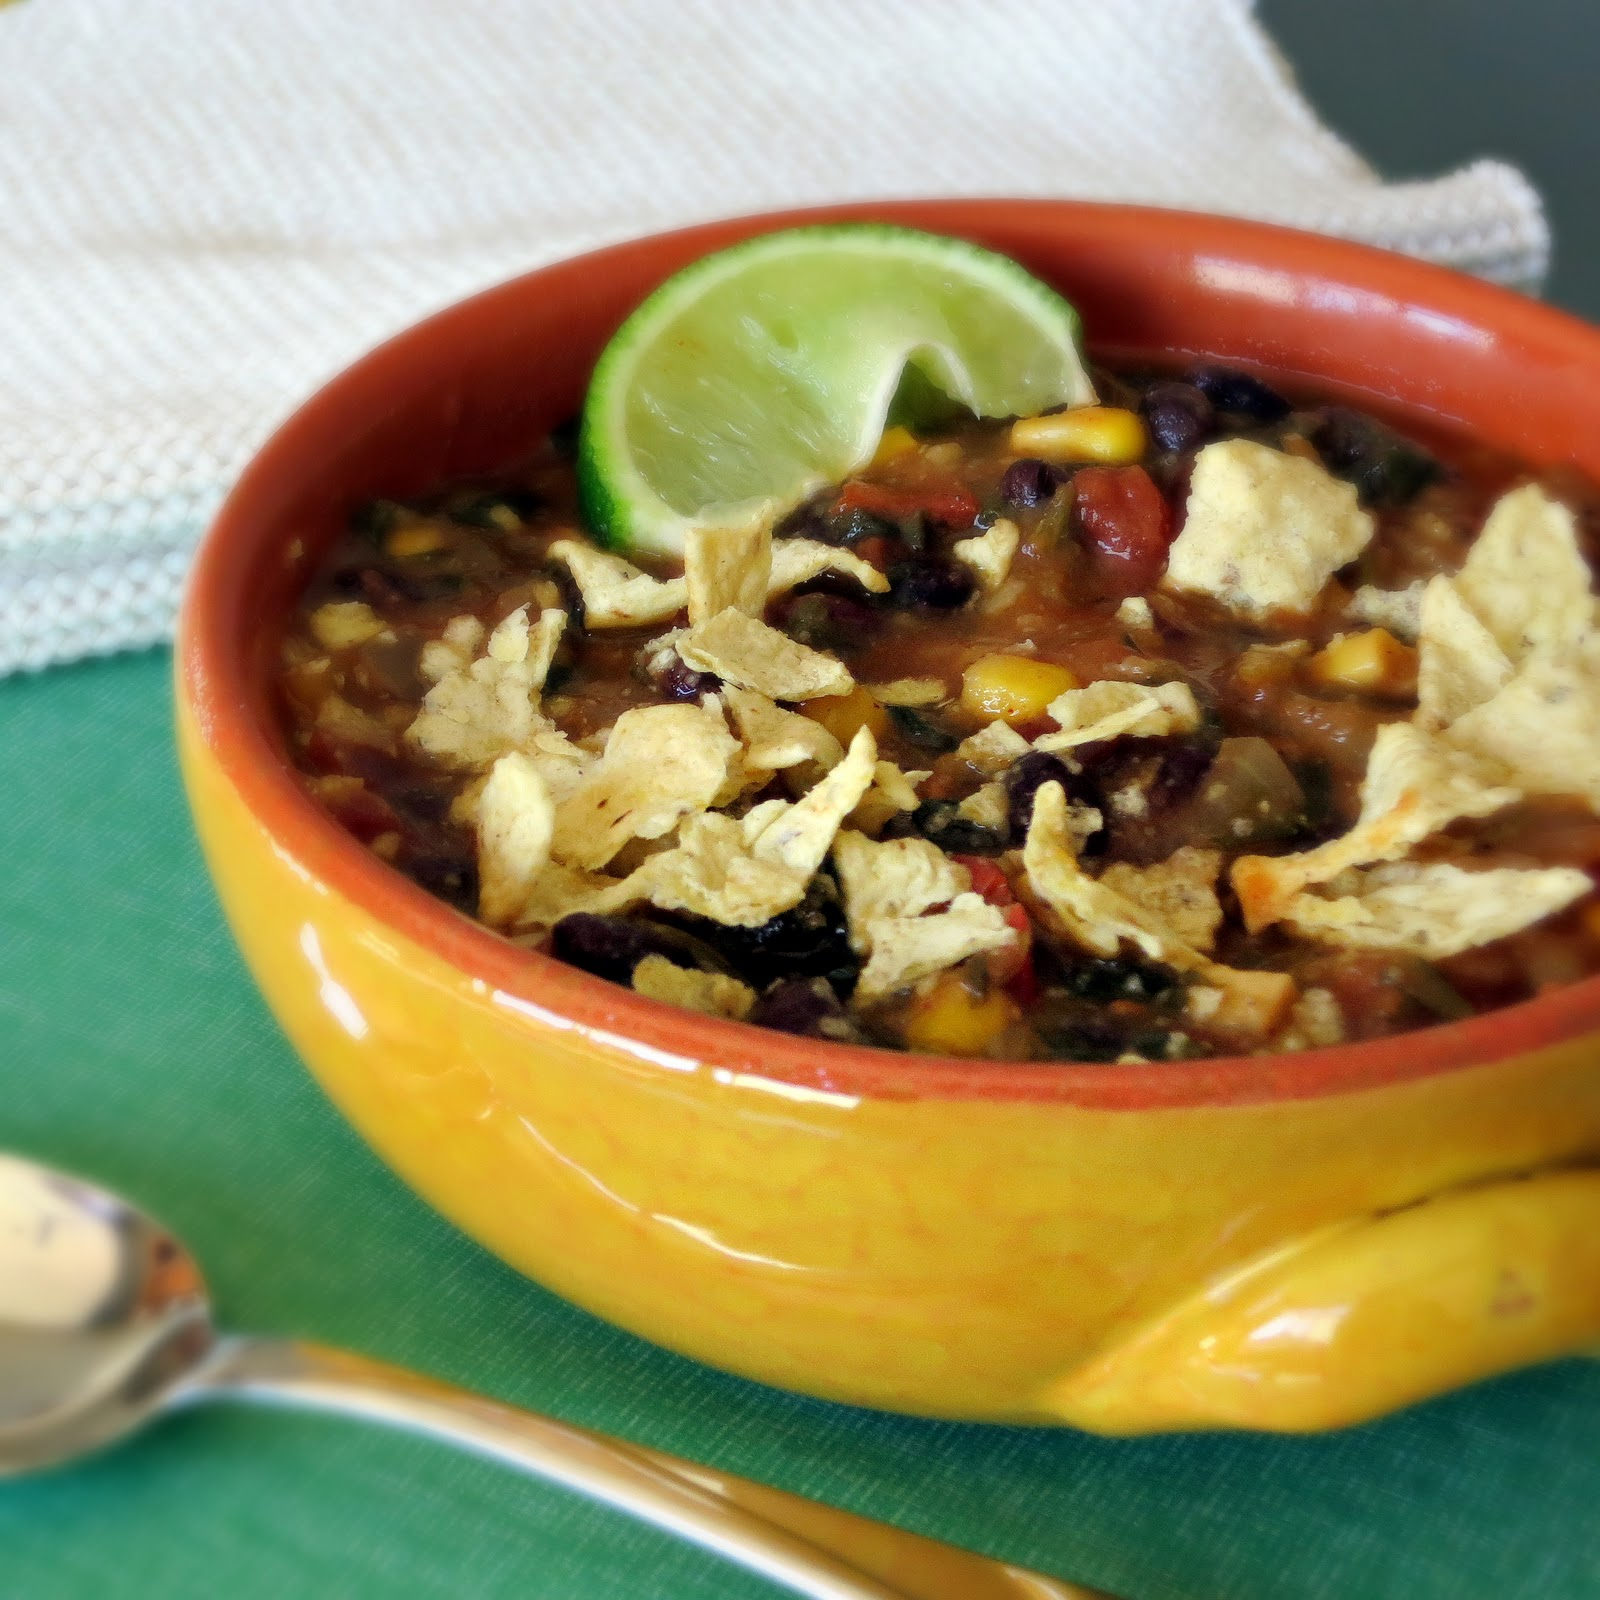 Chunky Tortilla Soup with Black Beans - Alida's Kitchen